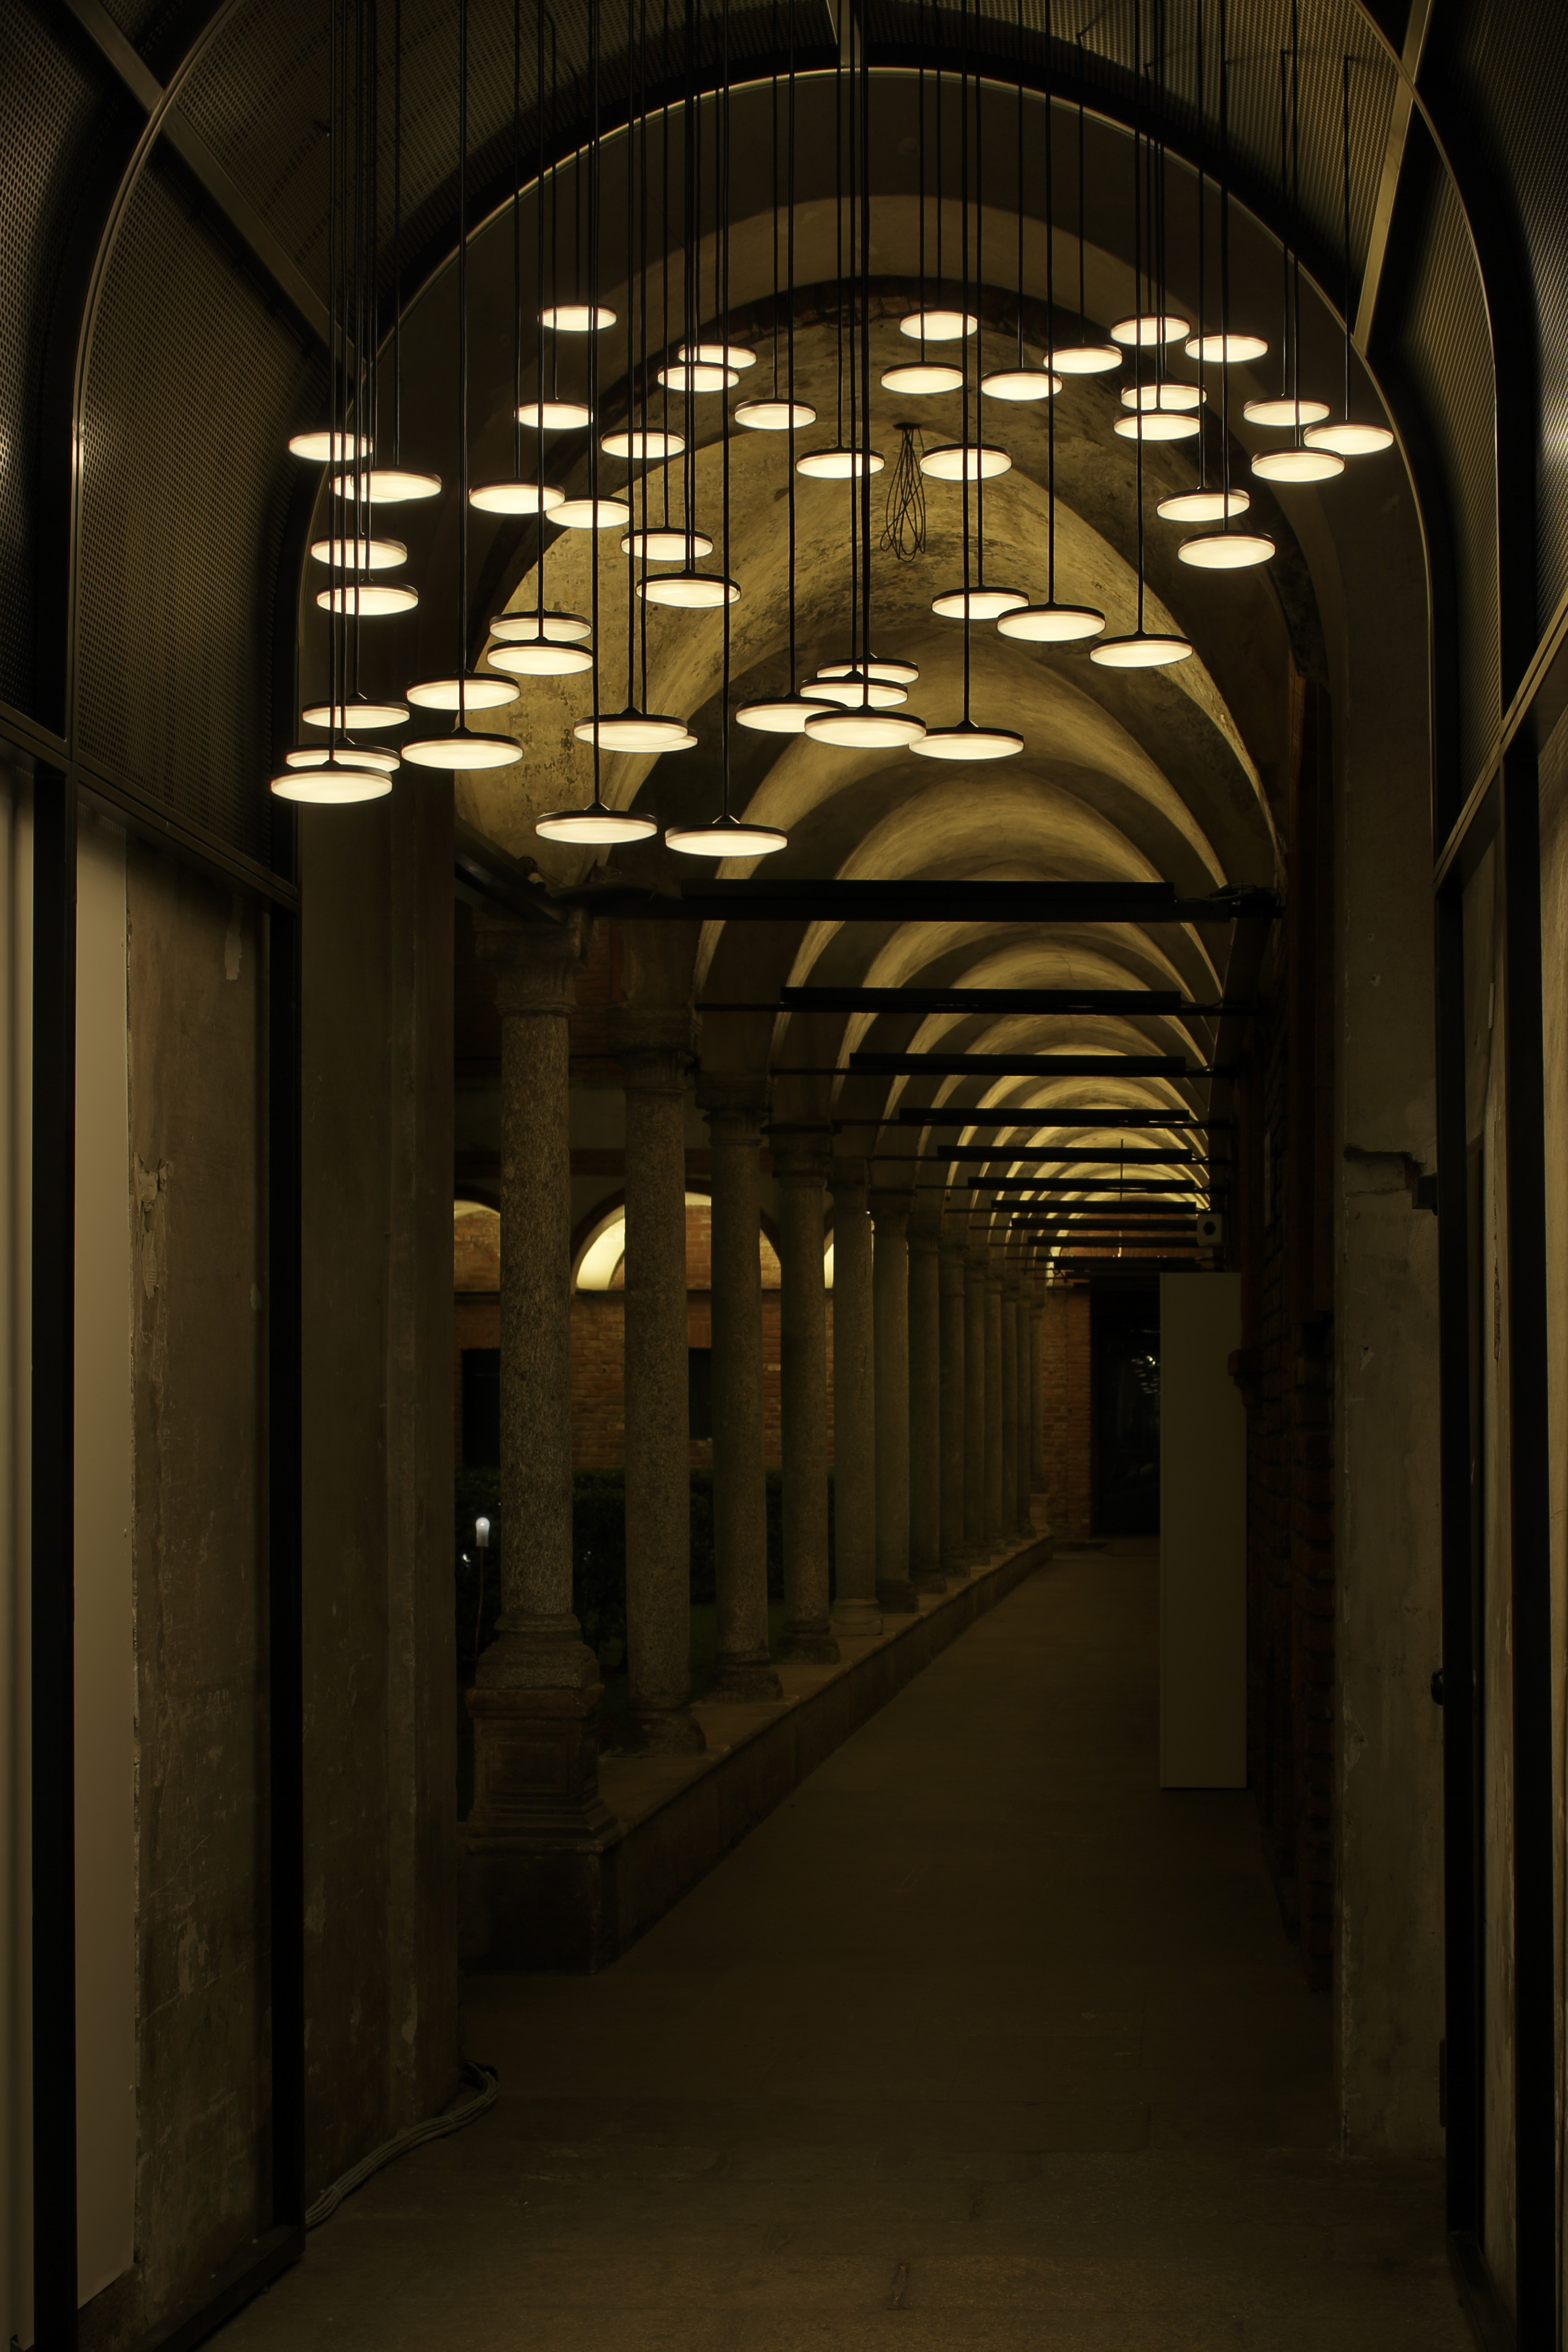 50 surface-emitting LED lamps are suspended from the ceiling in the entrance to the corridor that surrounds the courtyard. (Photo by Satoshi Shigeta)